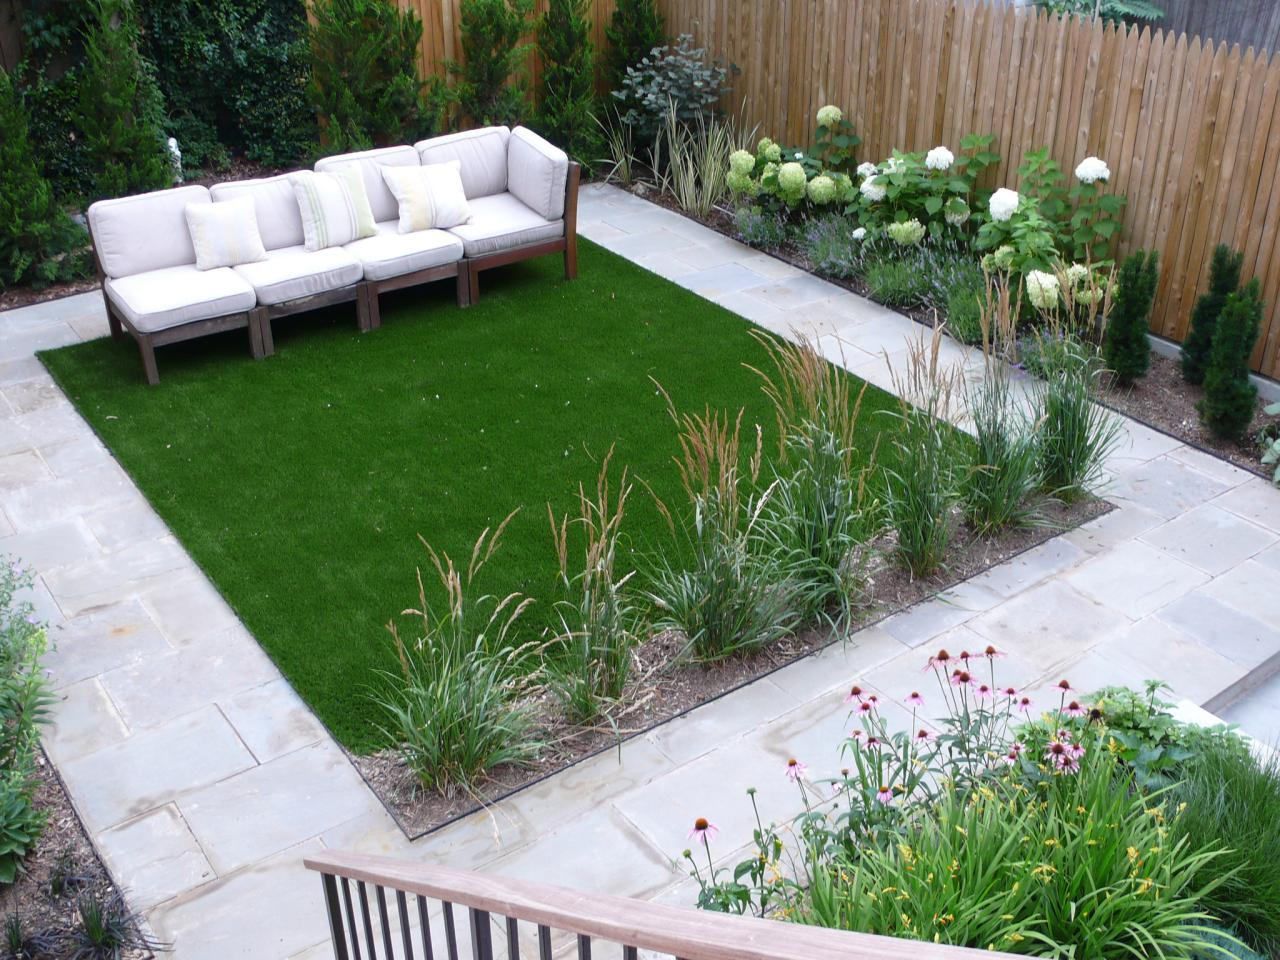 Low maintenance landscaping design ideas hgtv for Small low maintenance garden designs